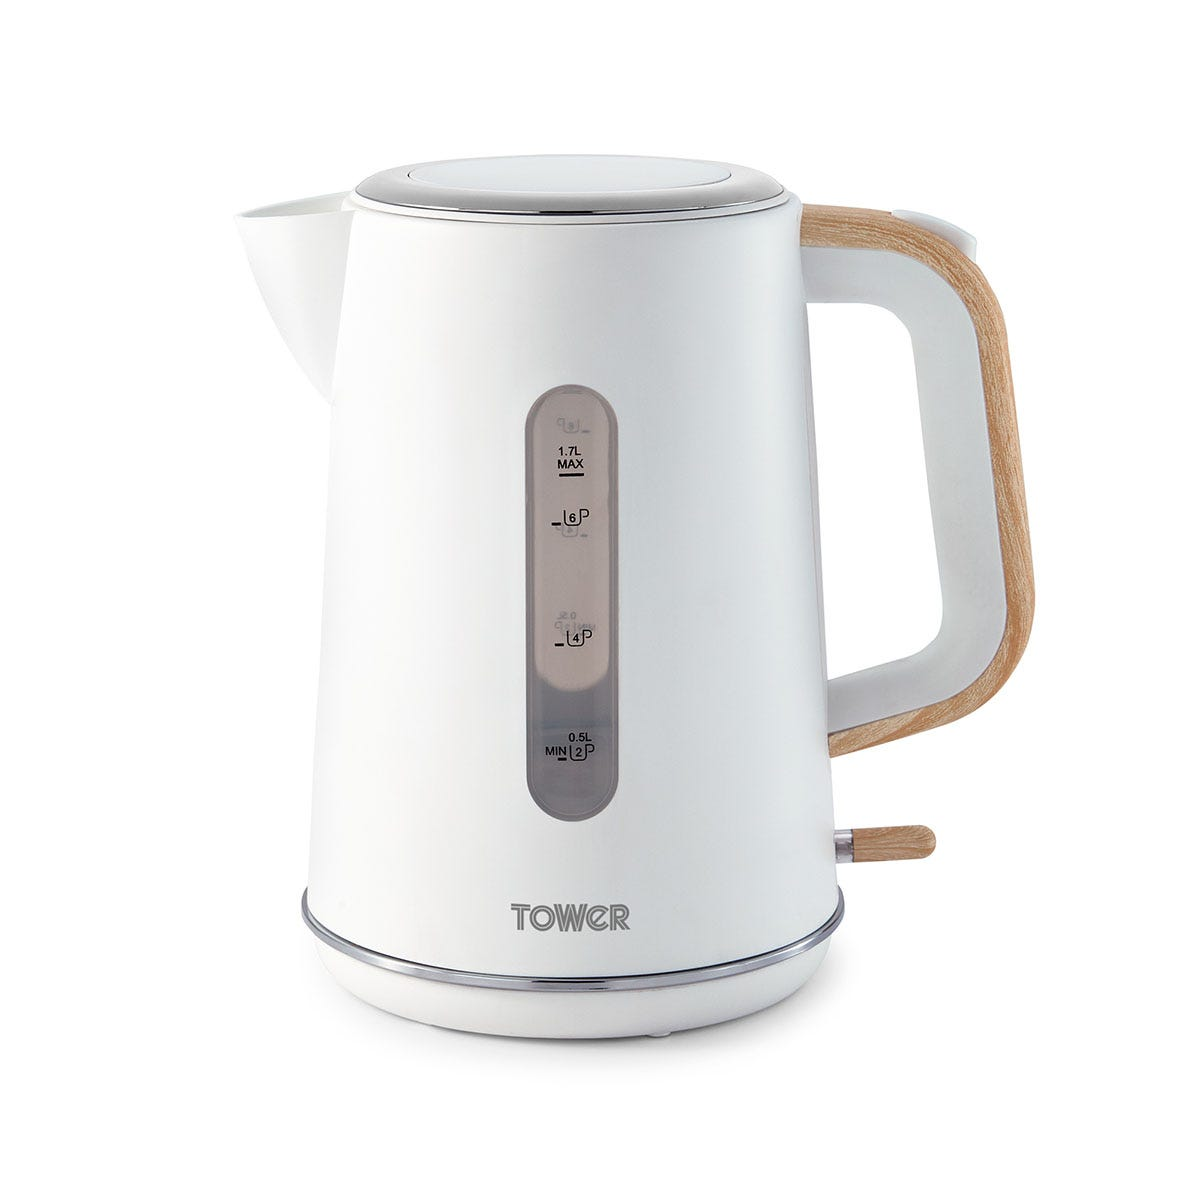 Tower T10037 Scandi 3kW Rapid Boil and Boil Dry Potected 1.7L Kettle - White